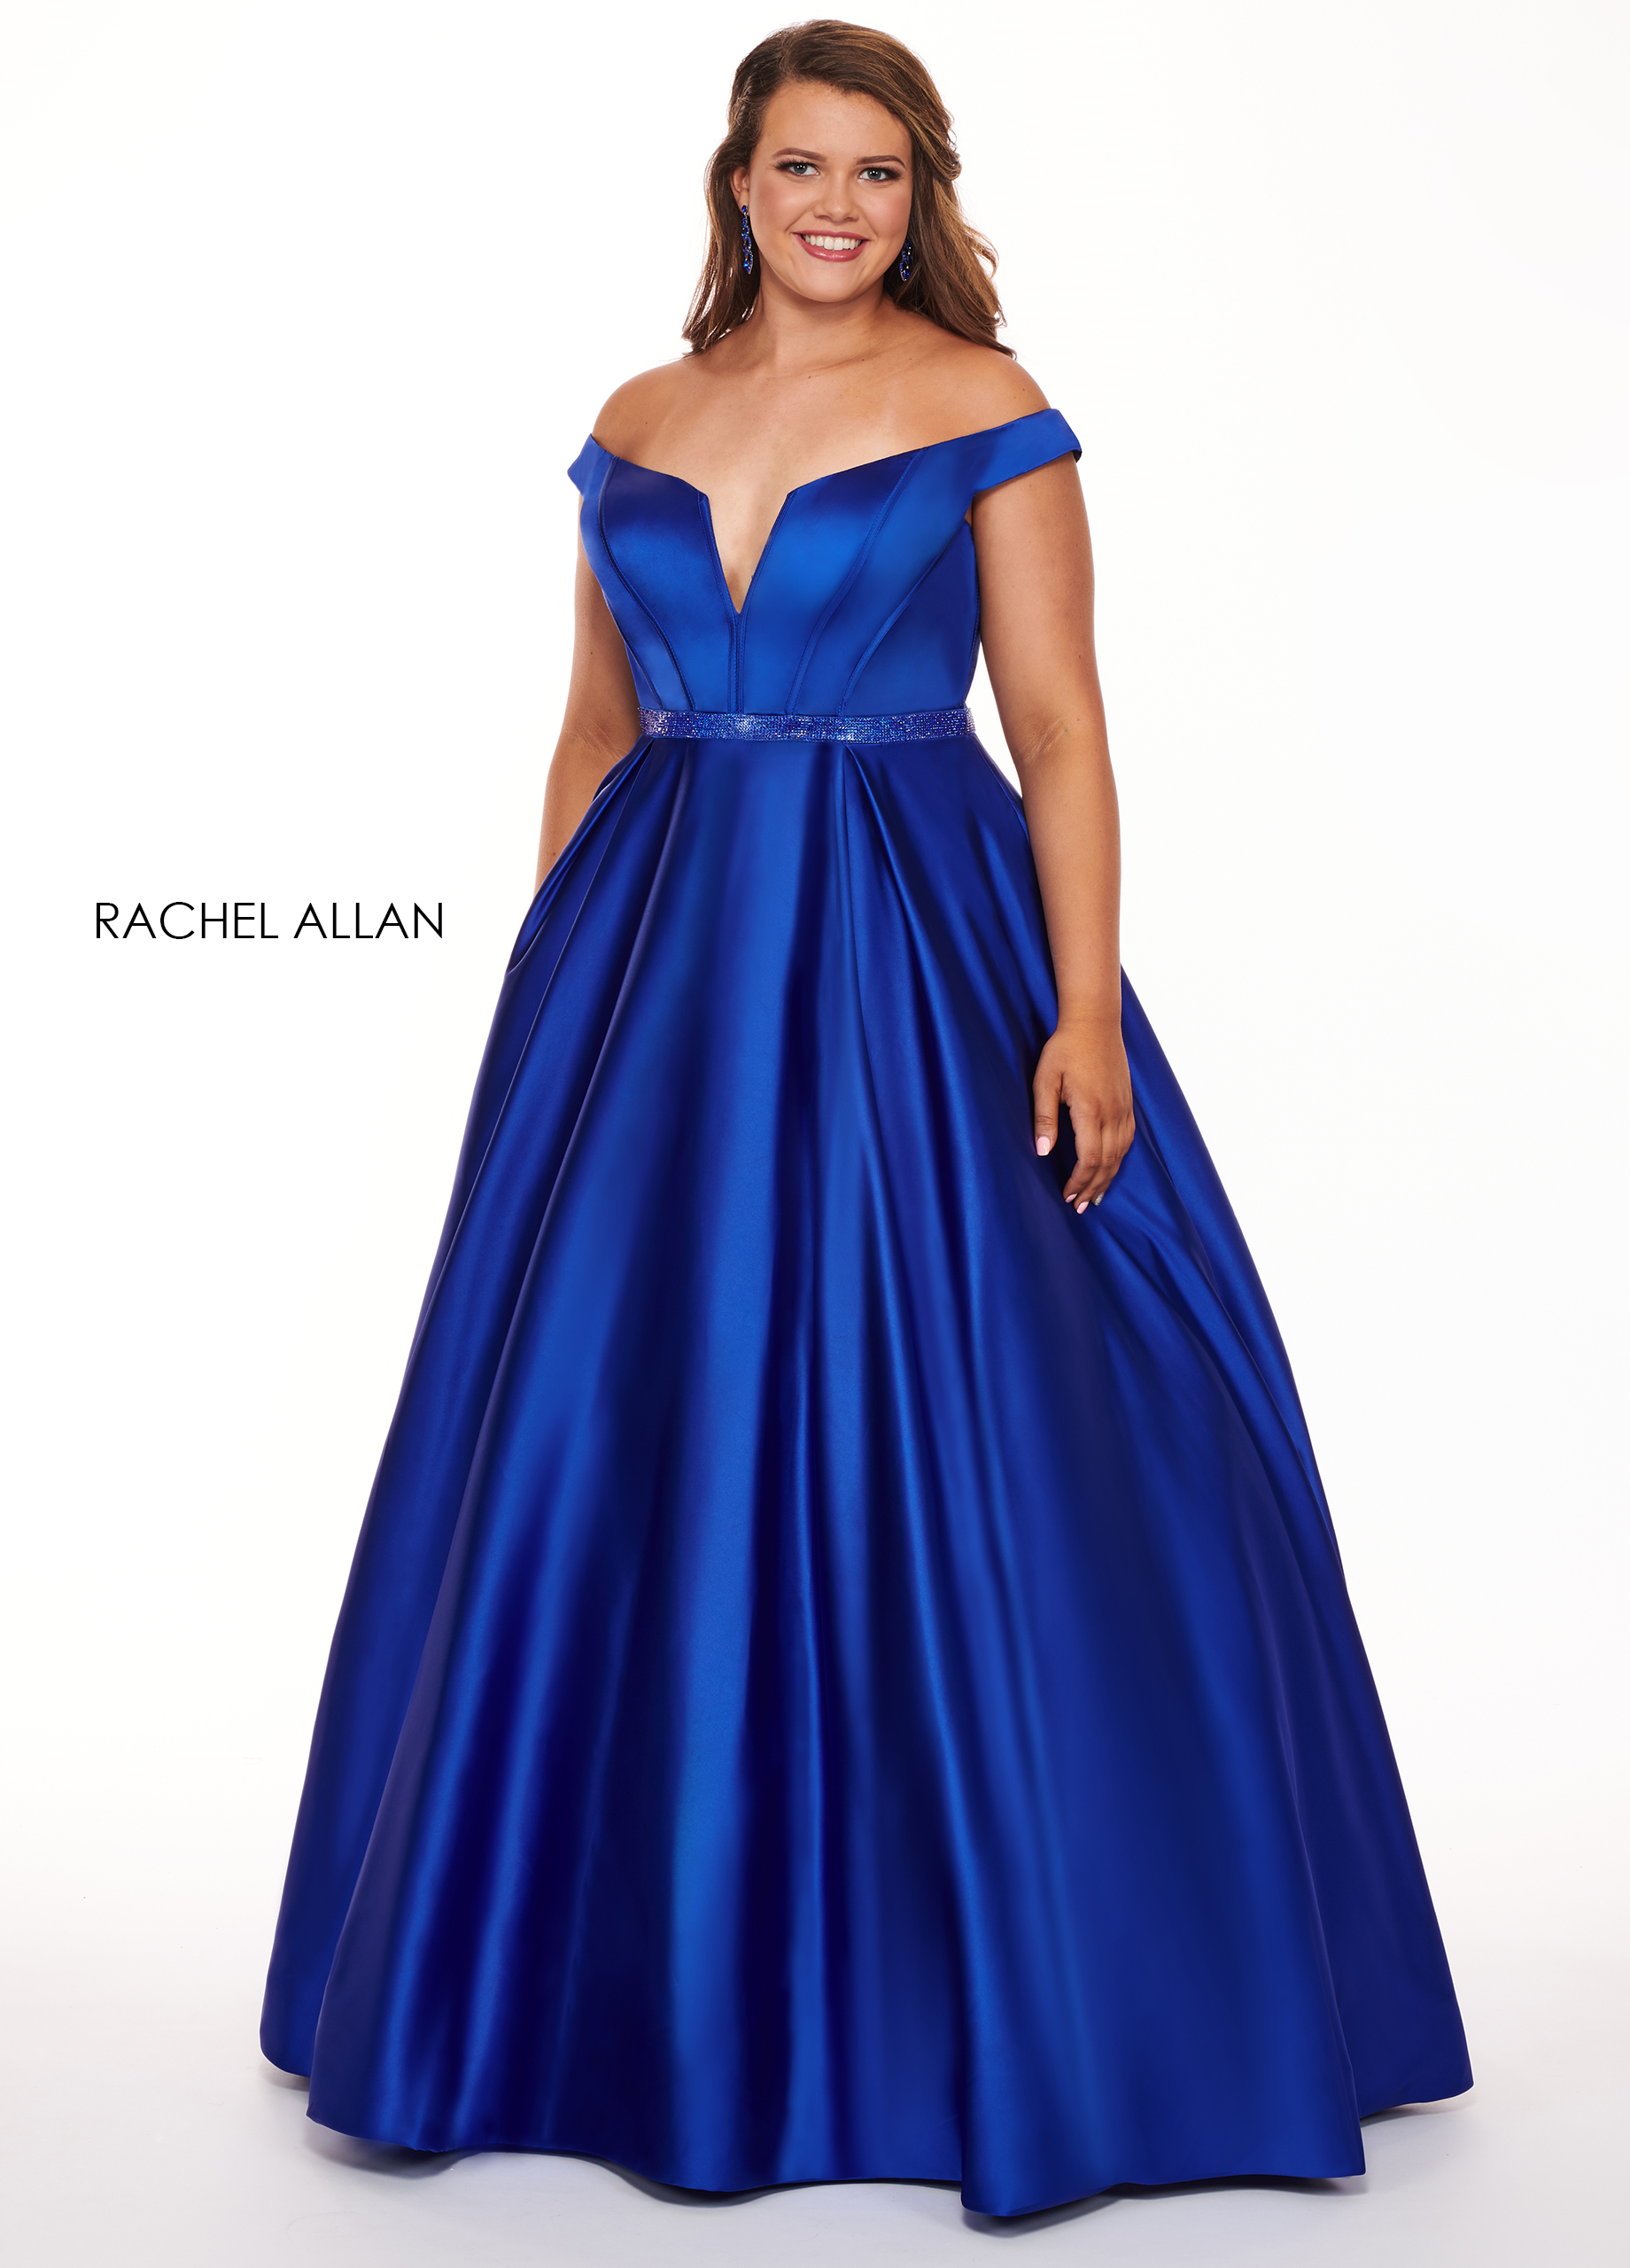 Off The Shoulder Ball Gowns Plus Size Dresses in Royal Color